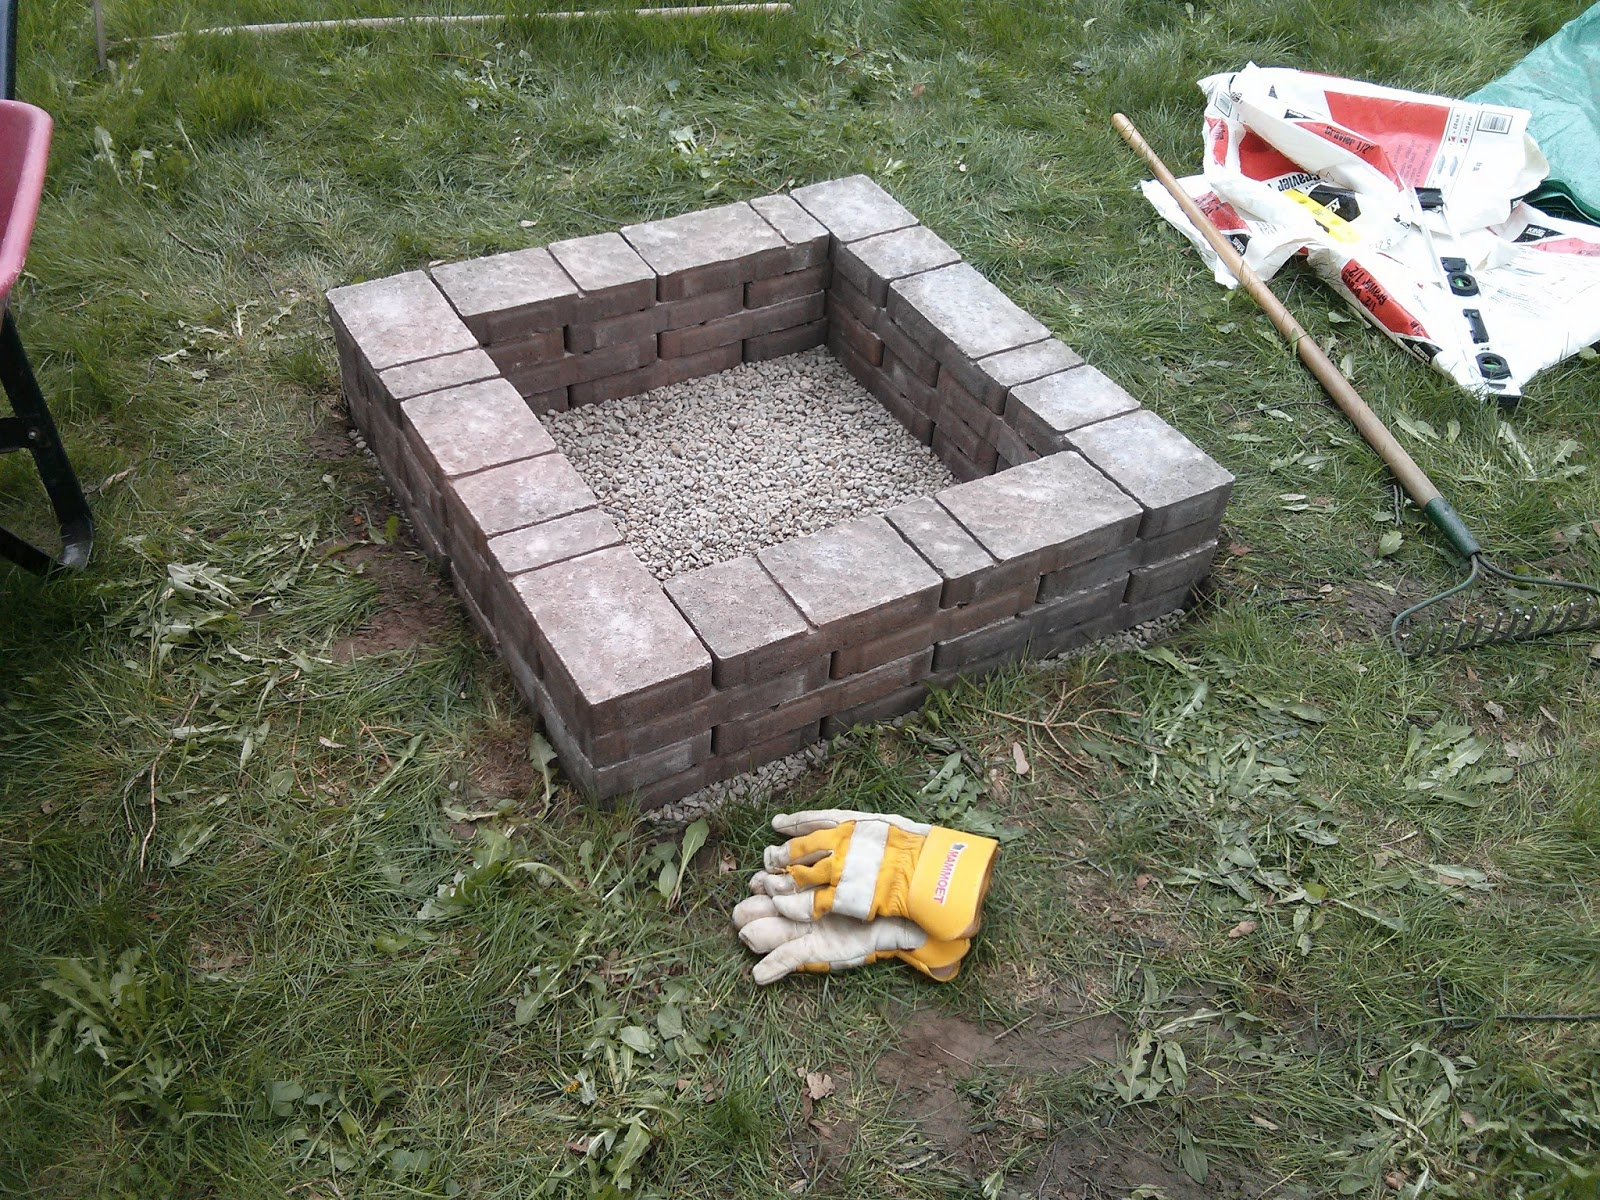 Divinely gifted mothers day diy fire pit for Built in fire pits designs